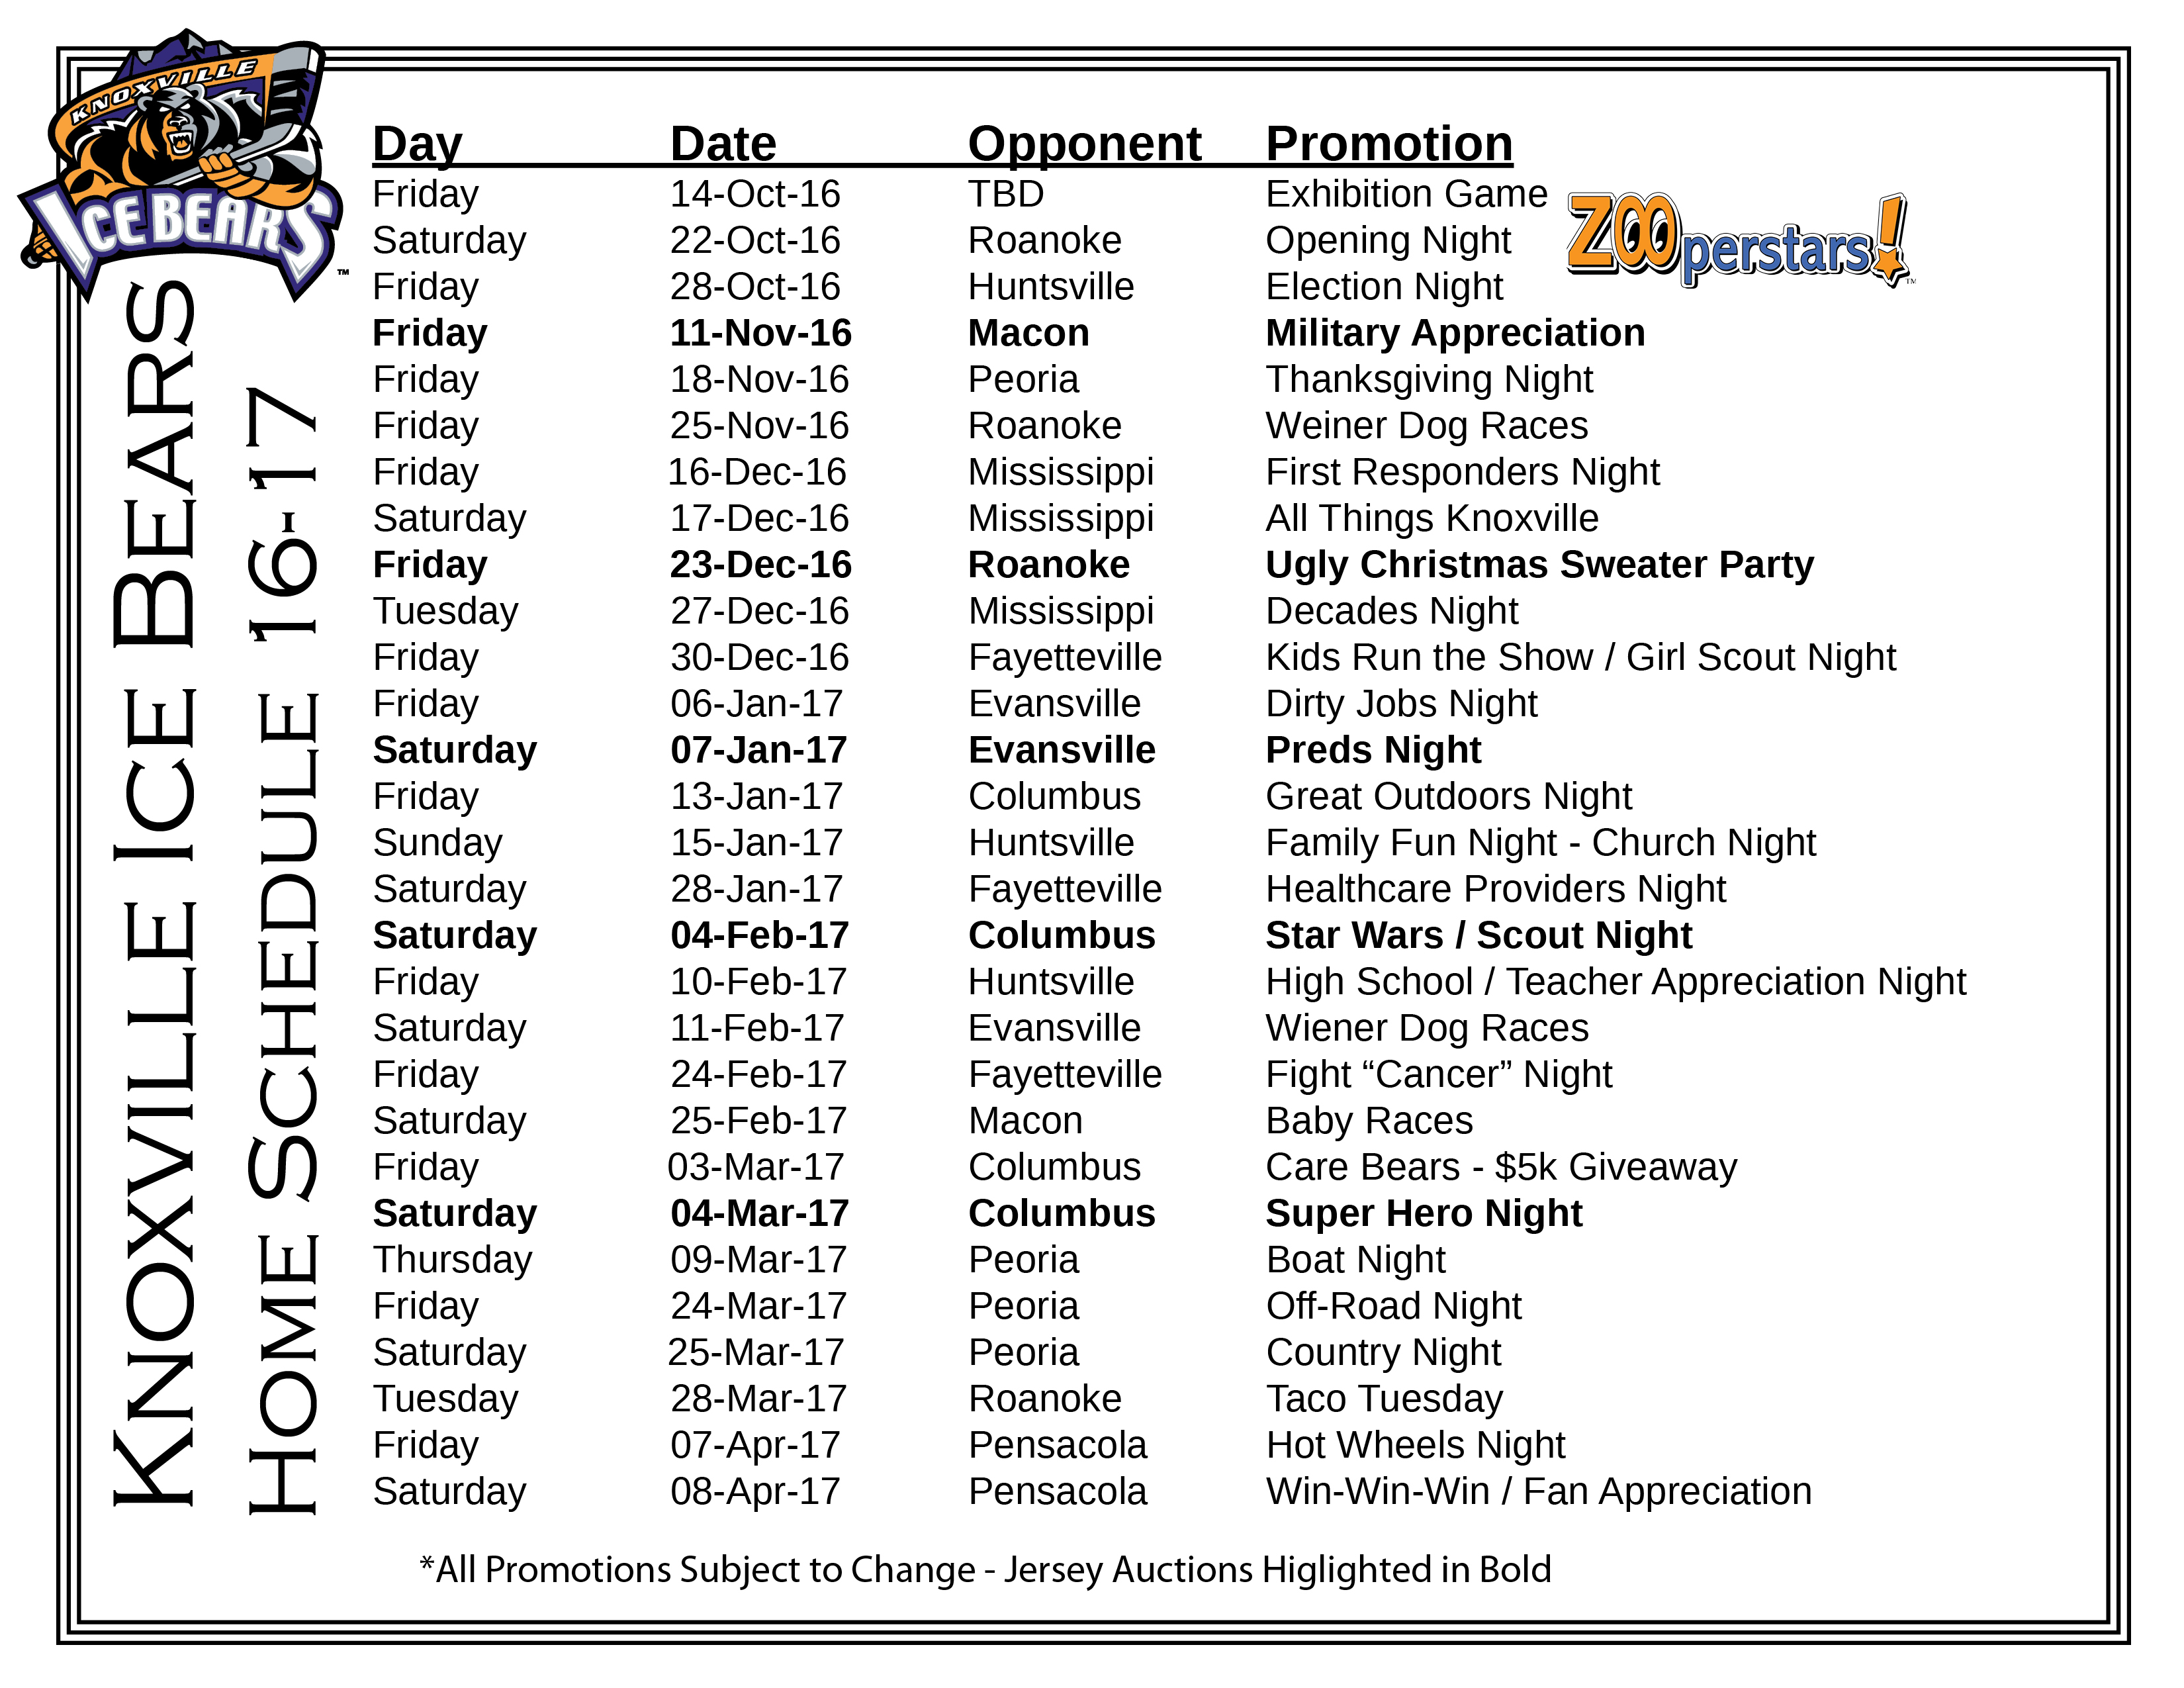 ice bears 2016-17 home-promo schedule - knoxville ice bears - sphl